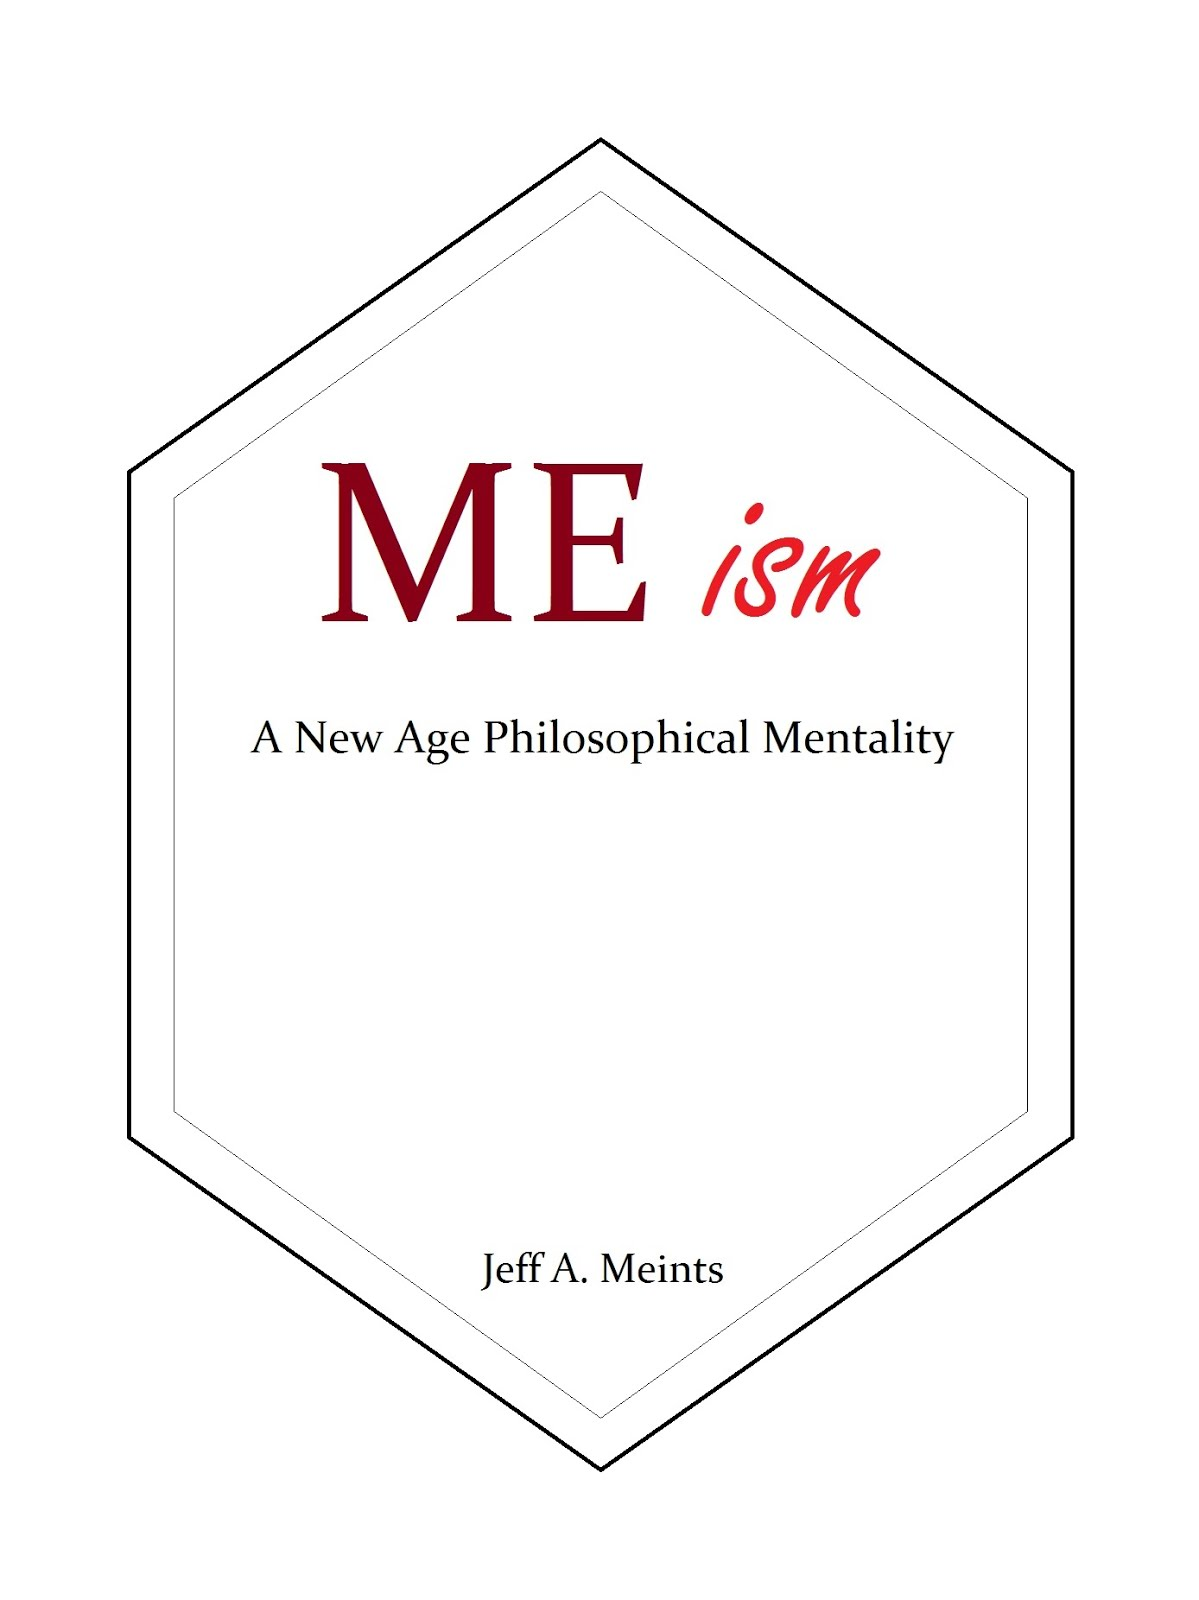 "Amazon Link to the book: ""MEism - A New Age Philosophical Mentality"""